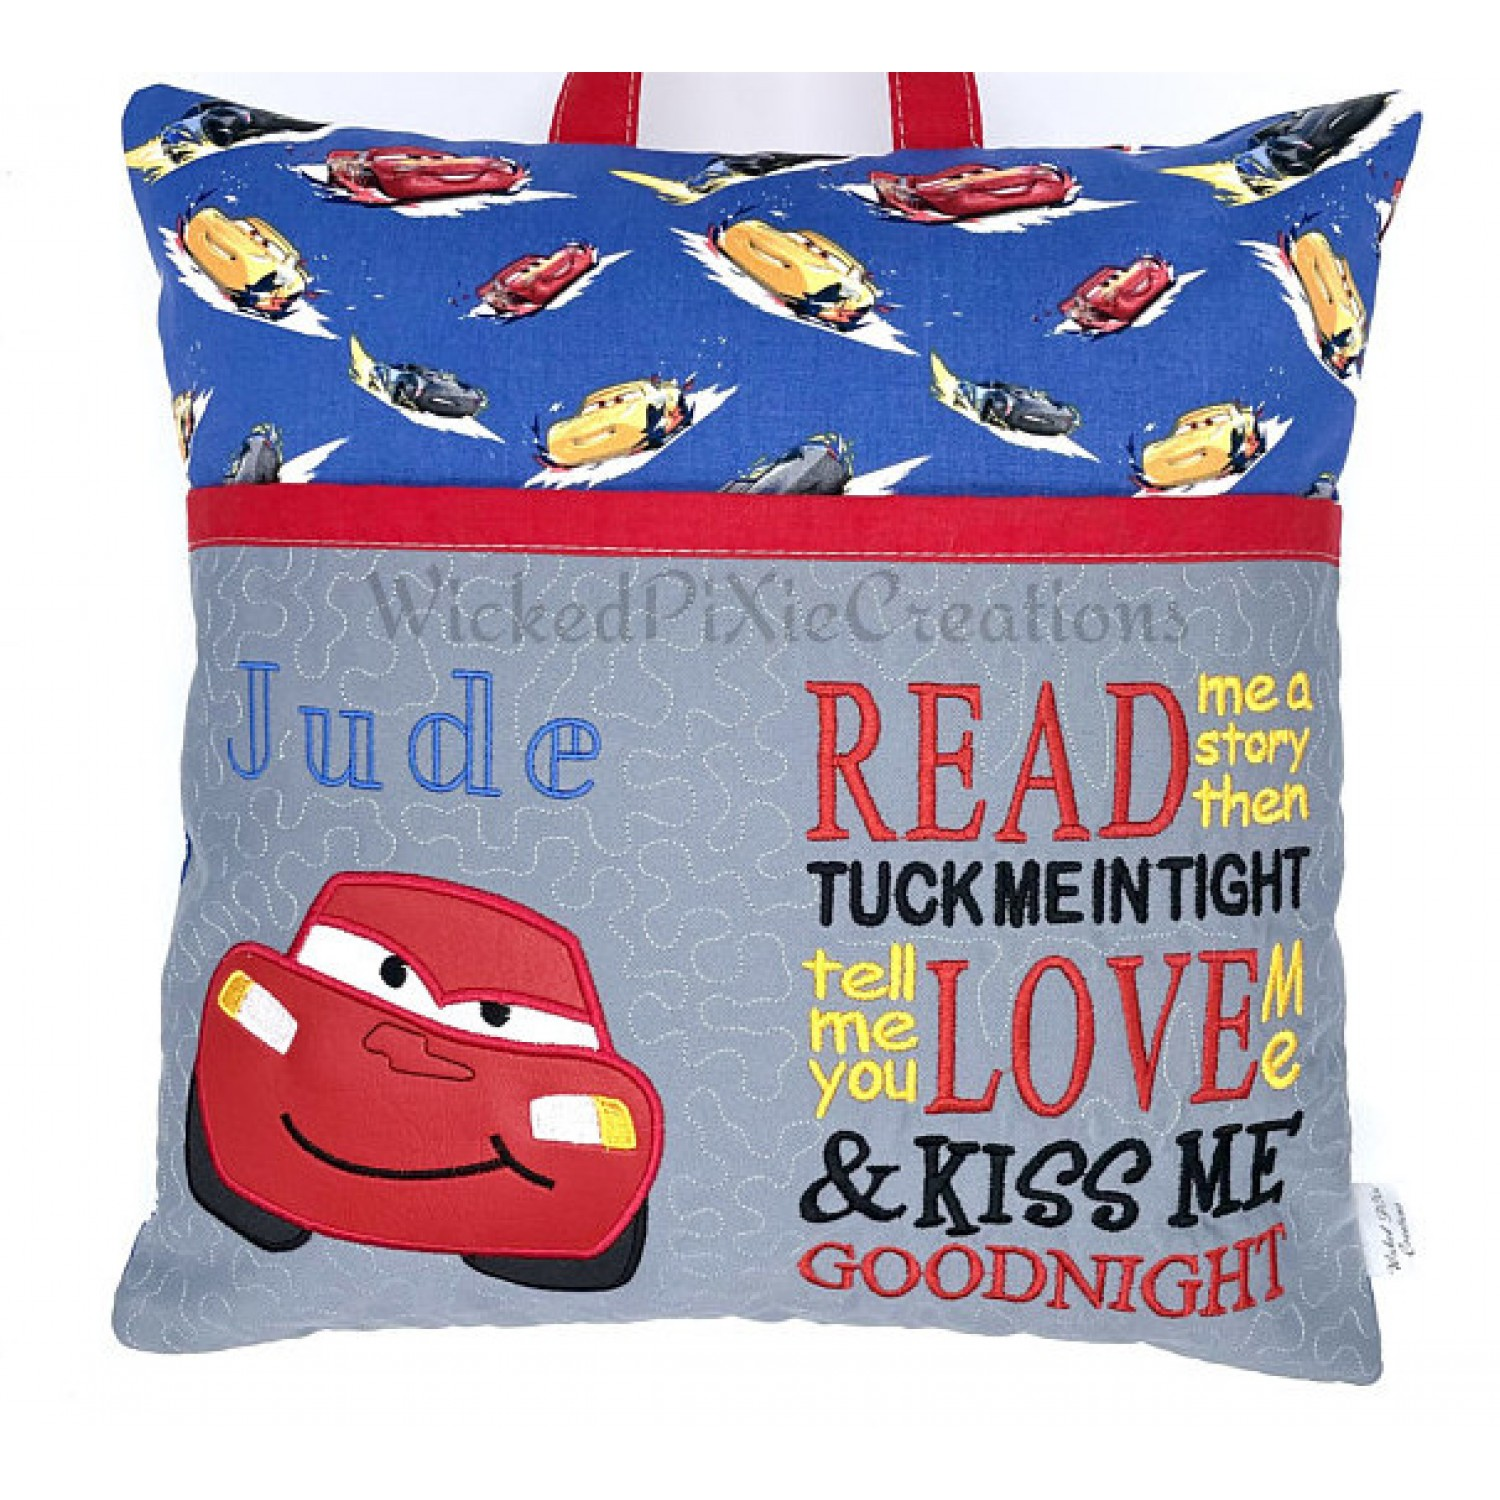 McQueen applique with read me a story designs